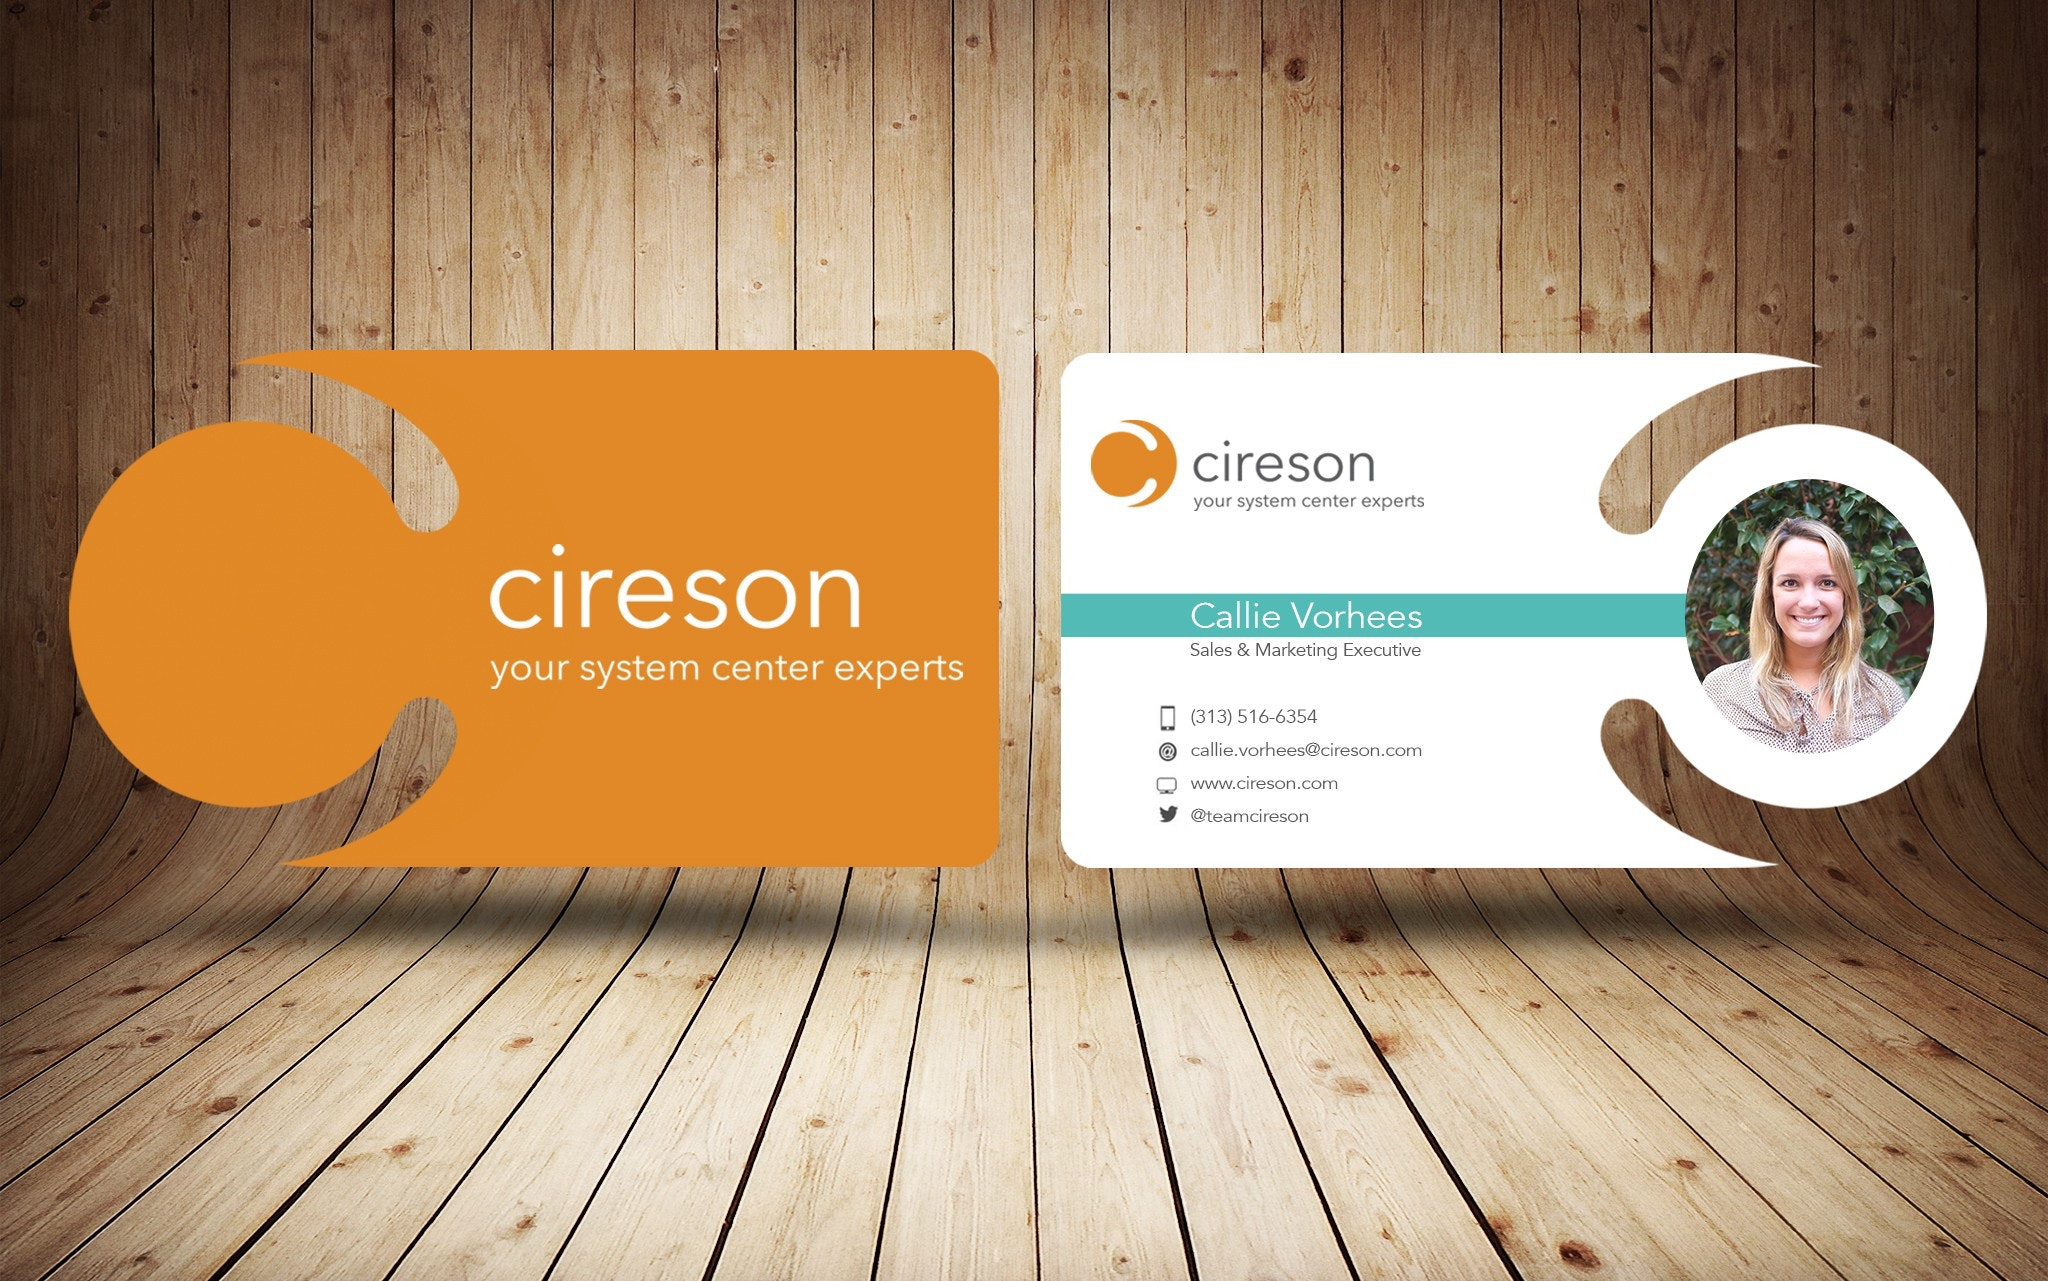 Cireson business card design